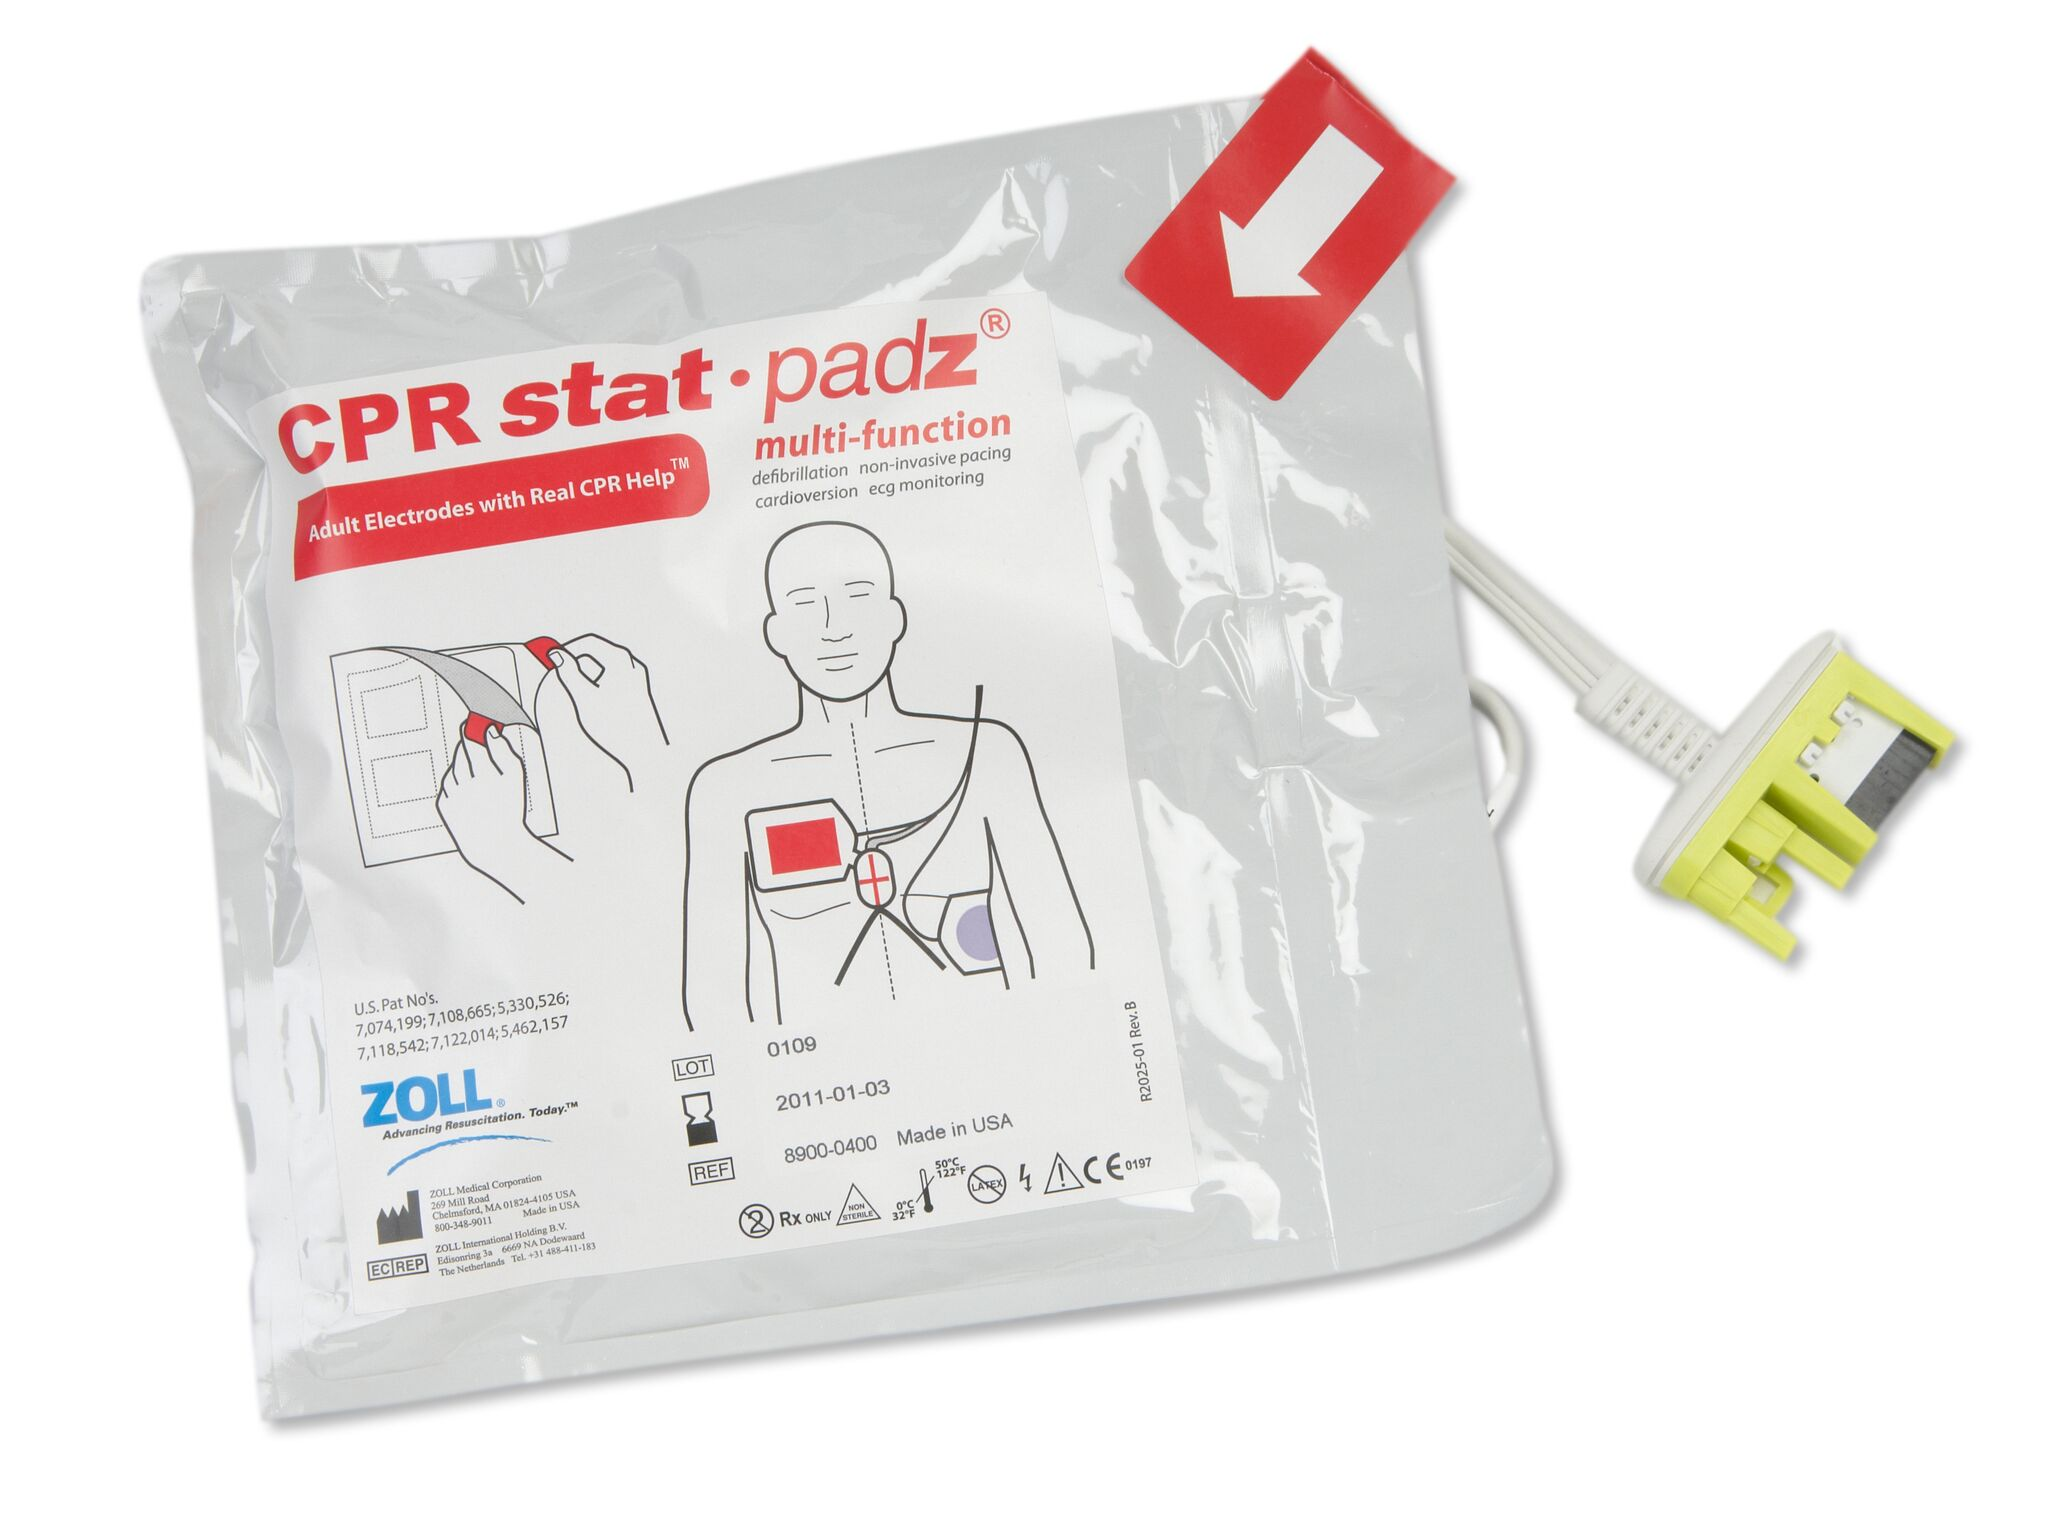 CPR stat padz mit Real CPR Help Funktion